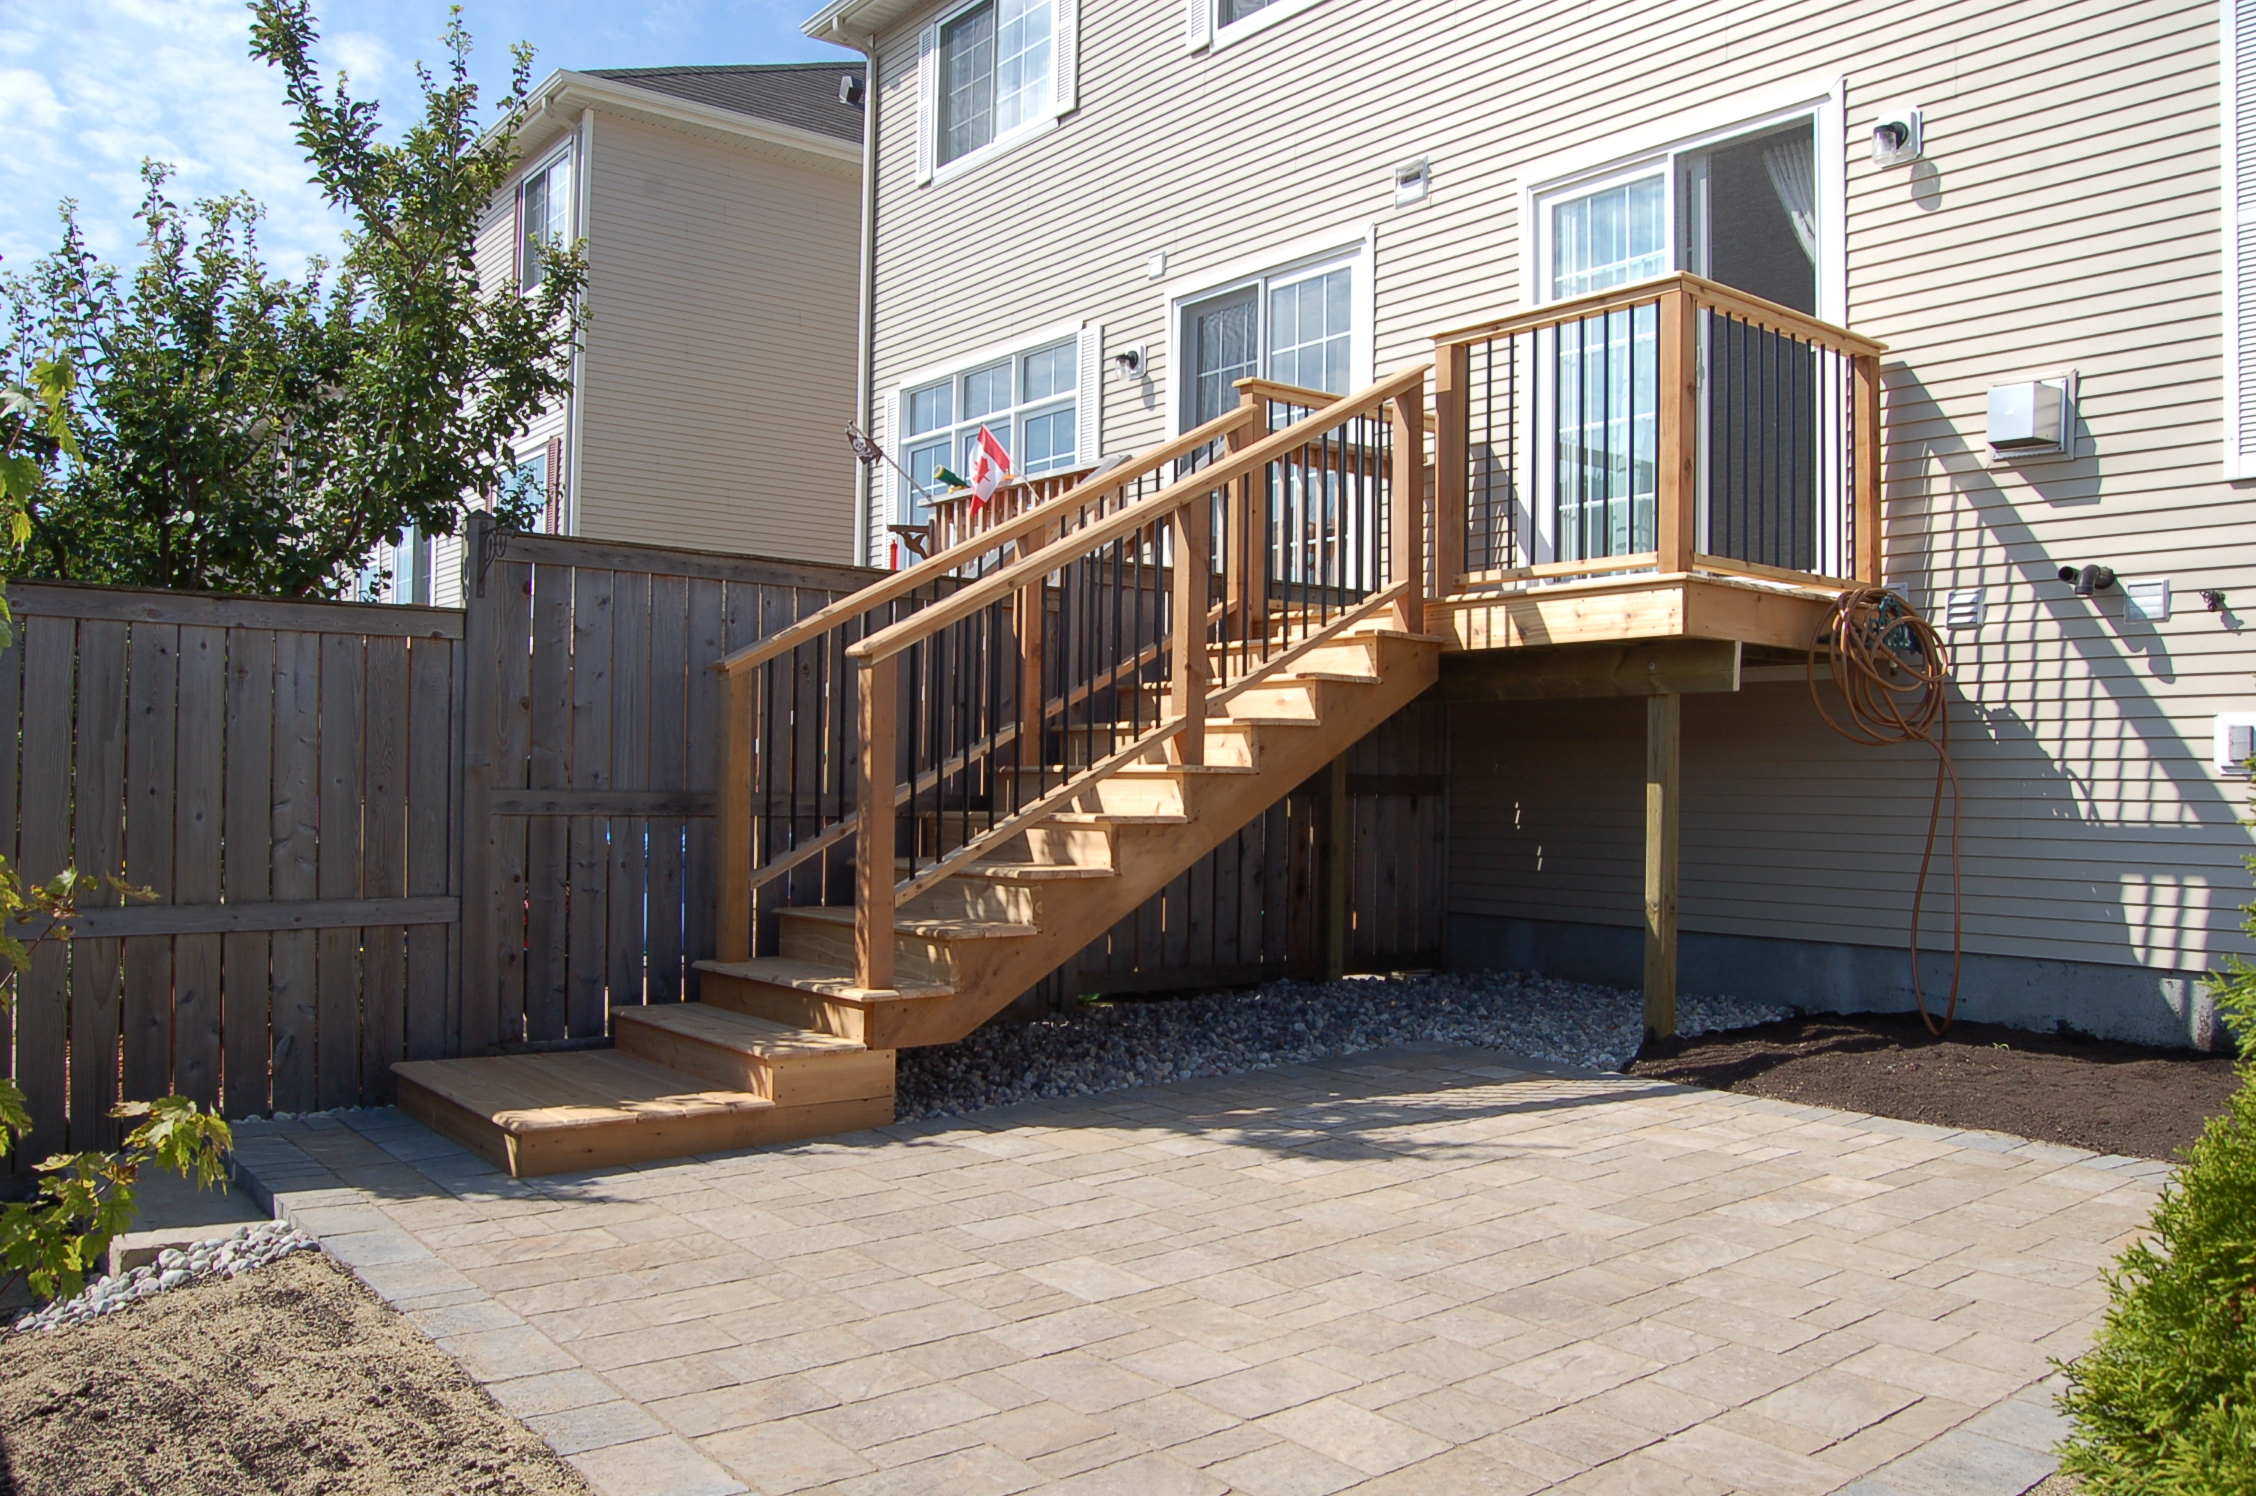 Brick Patio & Cedar Deck, Stairs